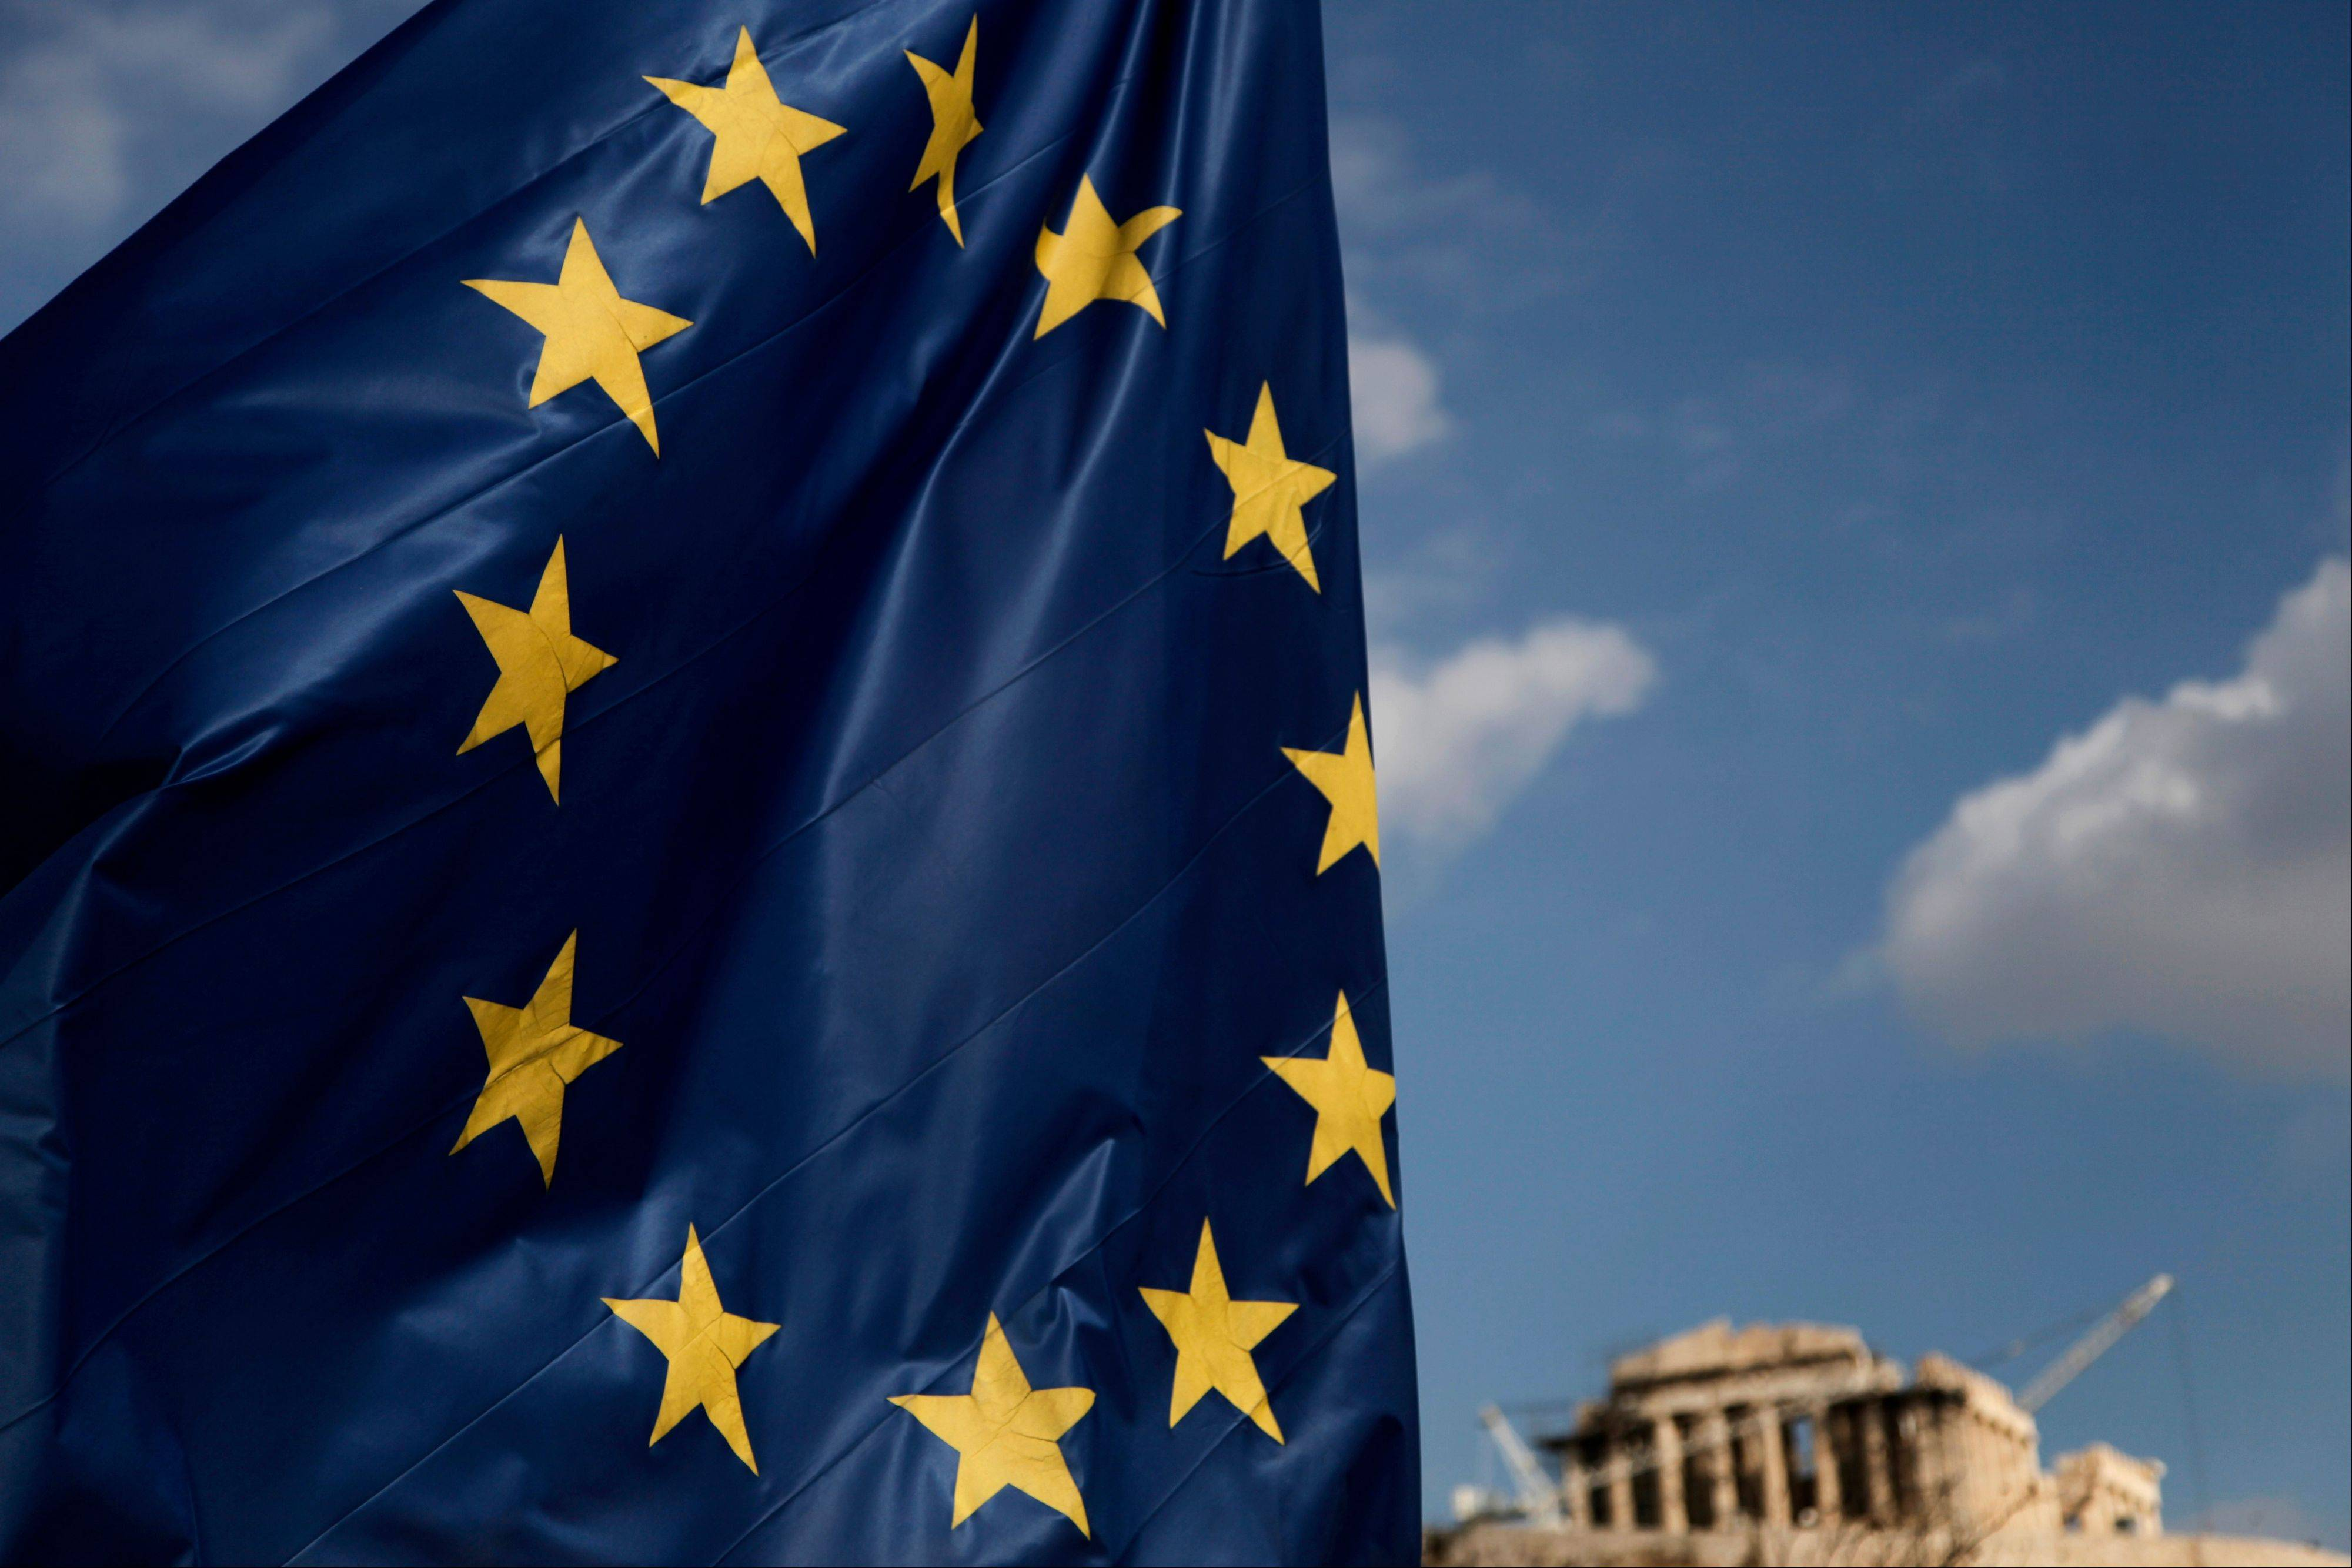 A European Union flag billows in the wind as the Parthenon temple is seen in the background on the Acropolis in Athens Monday. The ministers of the 17 countries that use the euro met in Brussels Monday to settle on Greece�s next rescue loan installment.